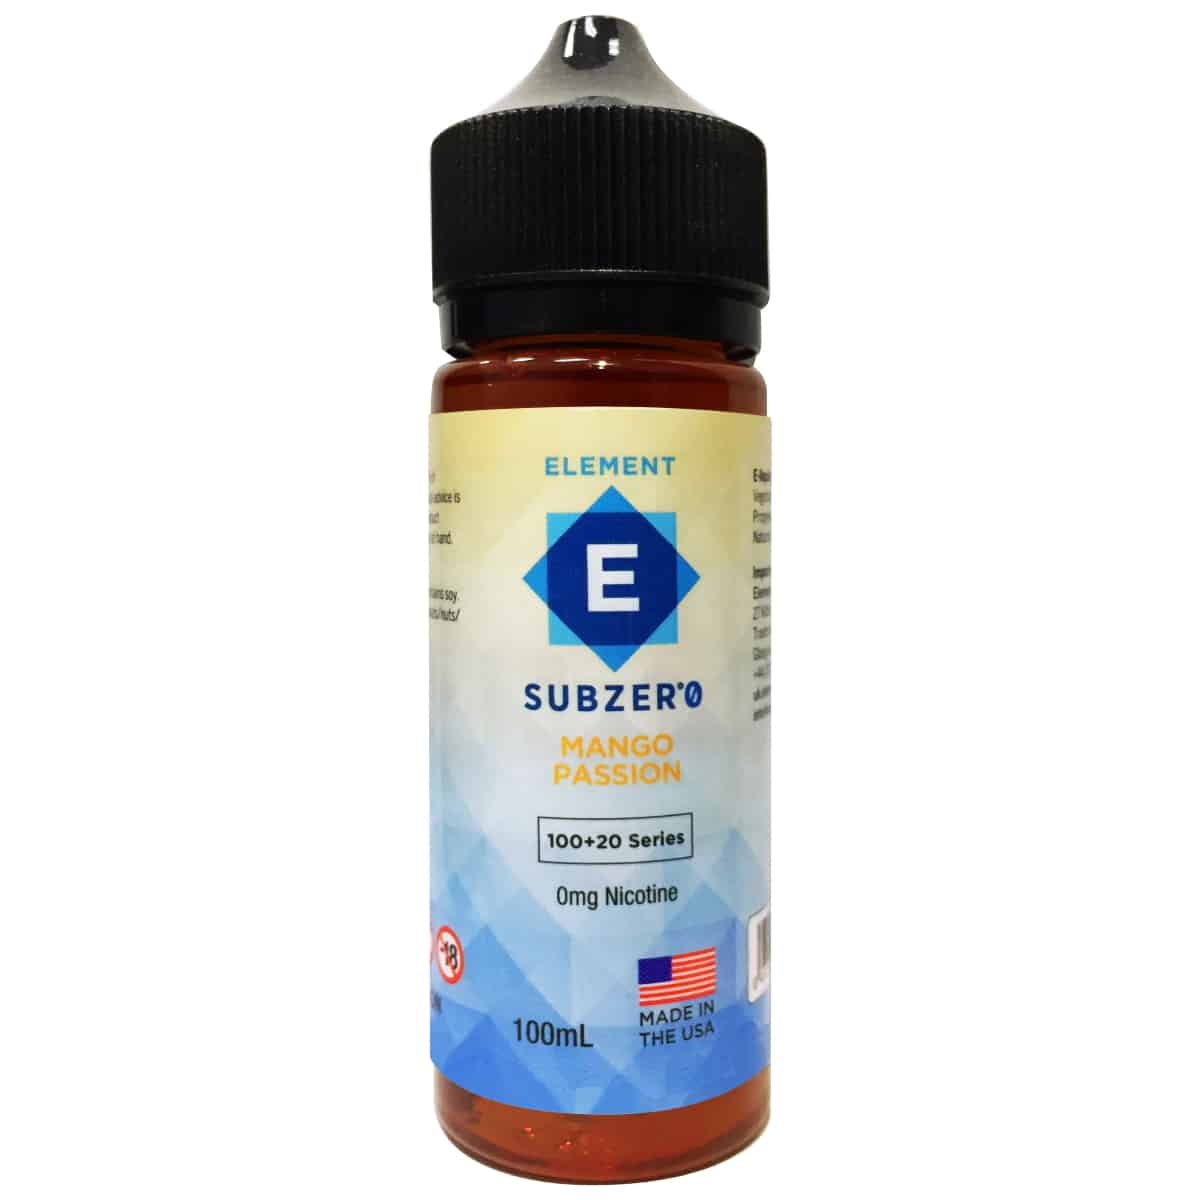 Mango Passion Element Subzero Shortfill 100ml